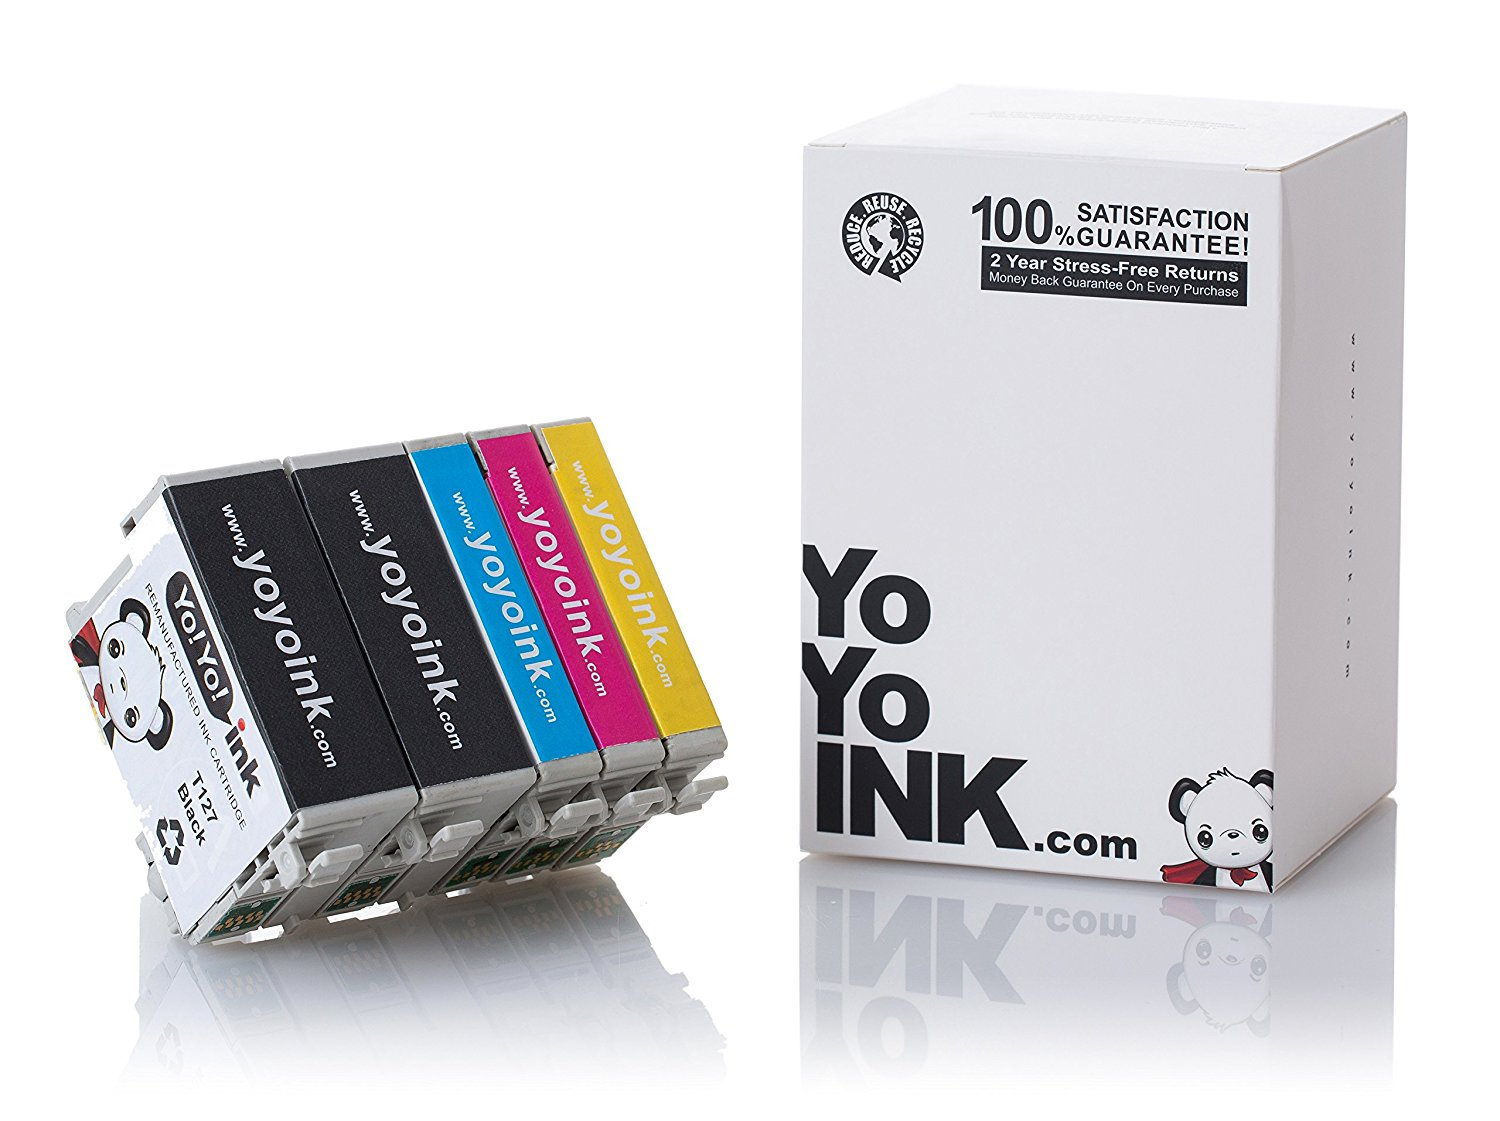 Remanufactured Epson 127 XL High Yield Ink Cartridges: 2 Black